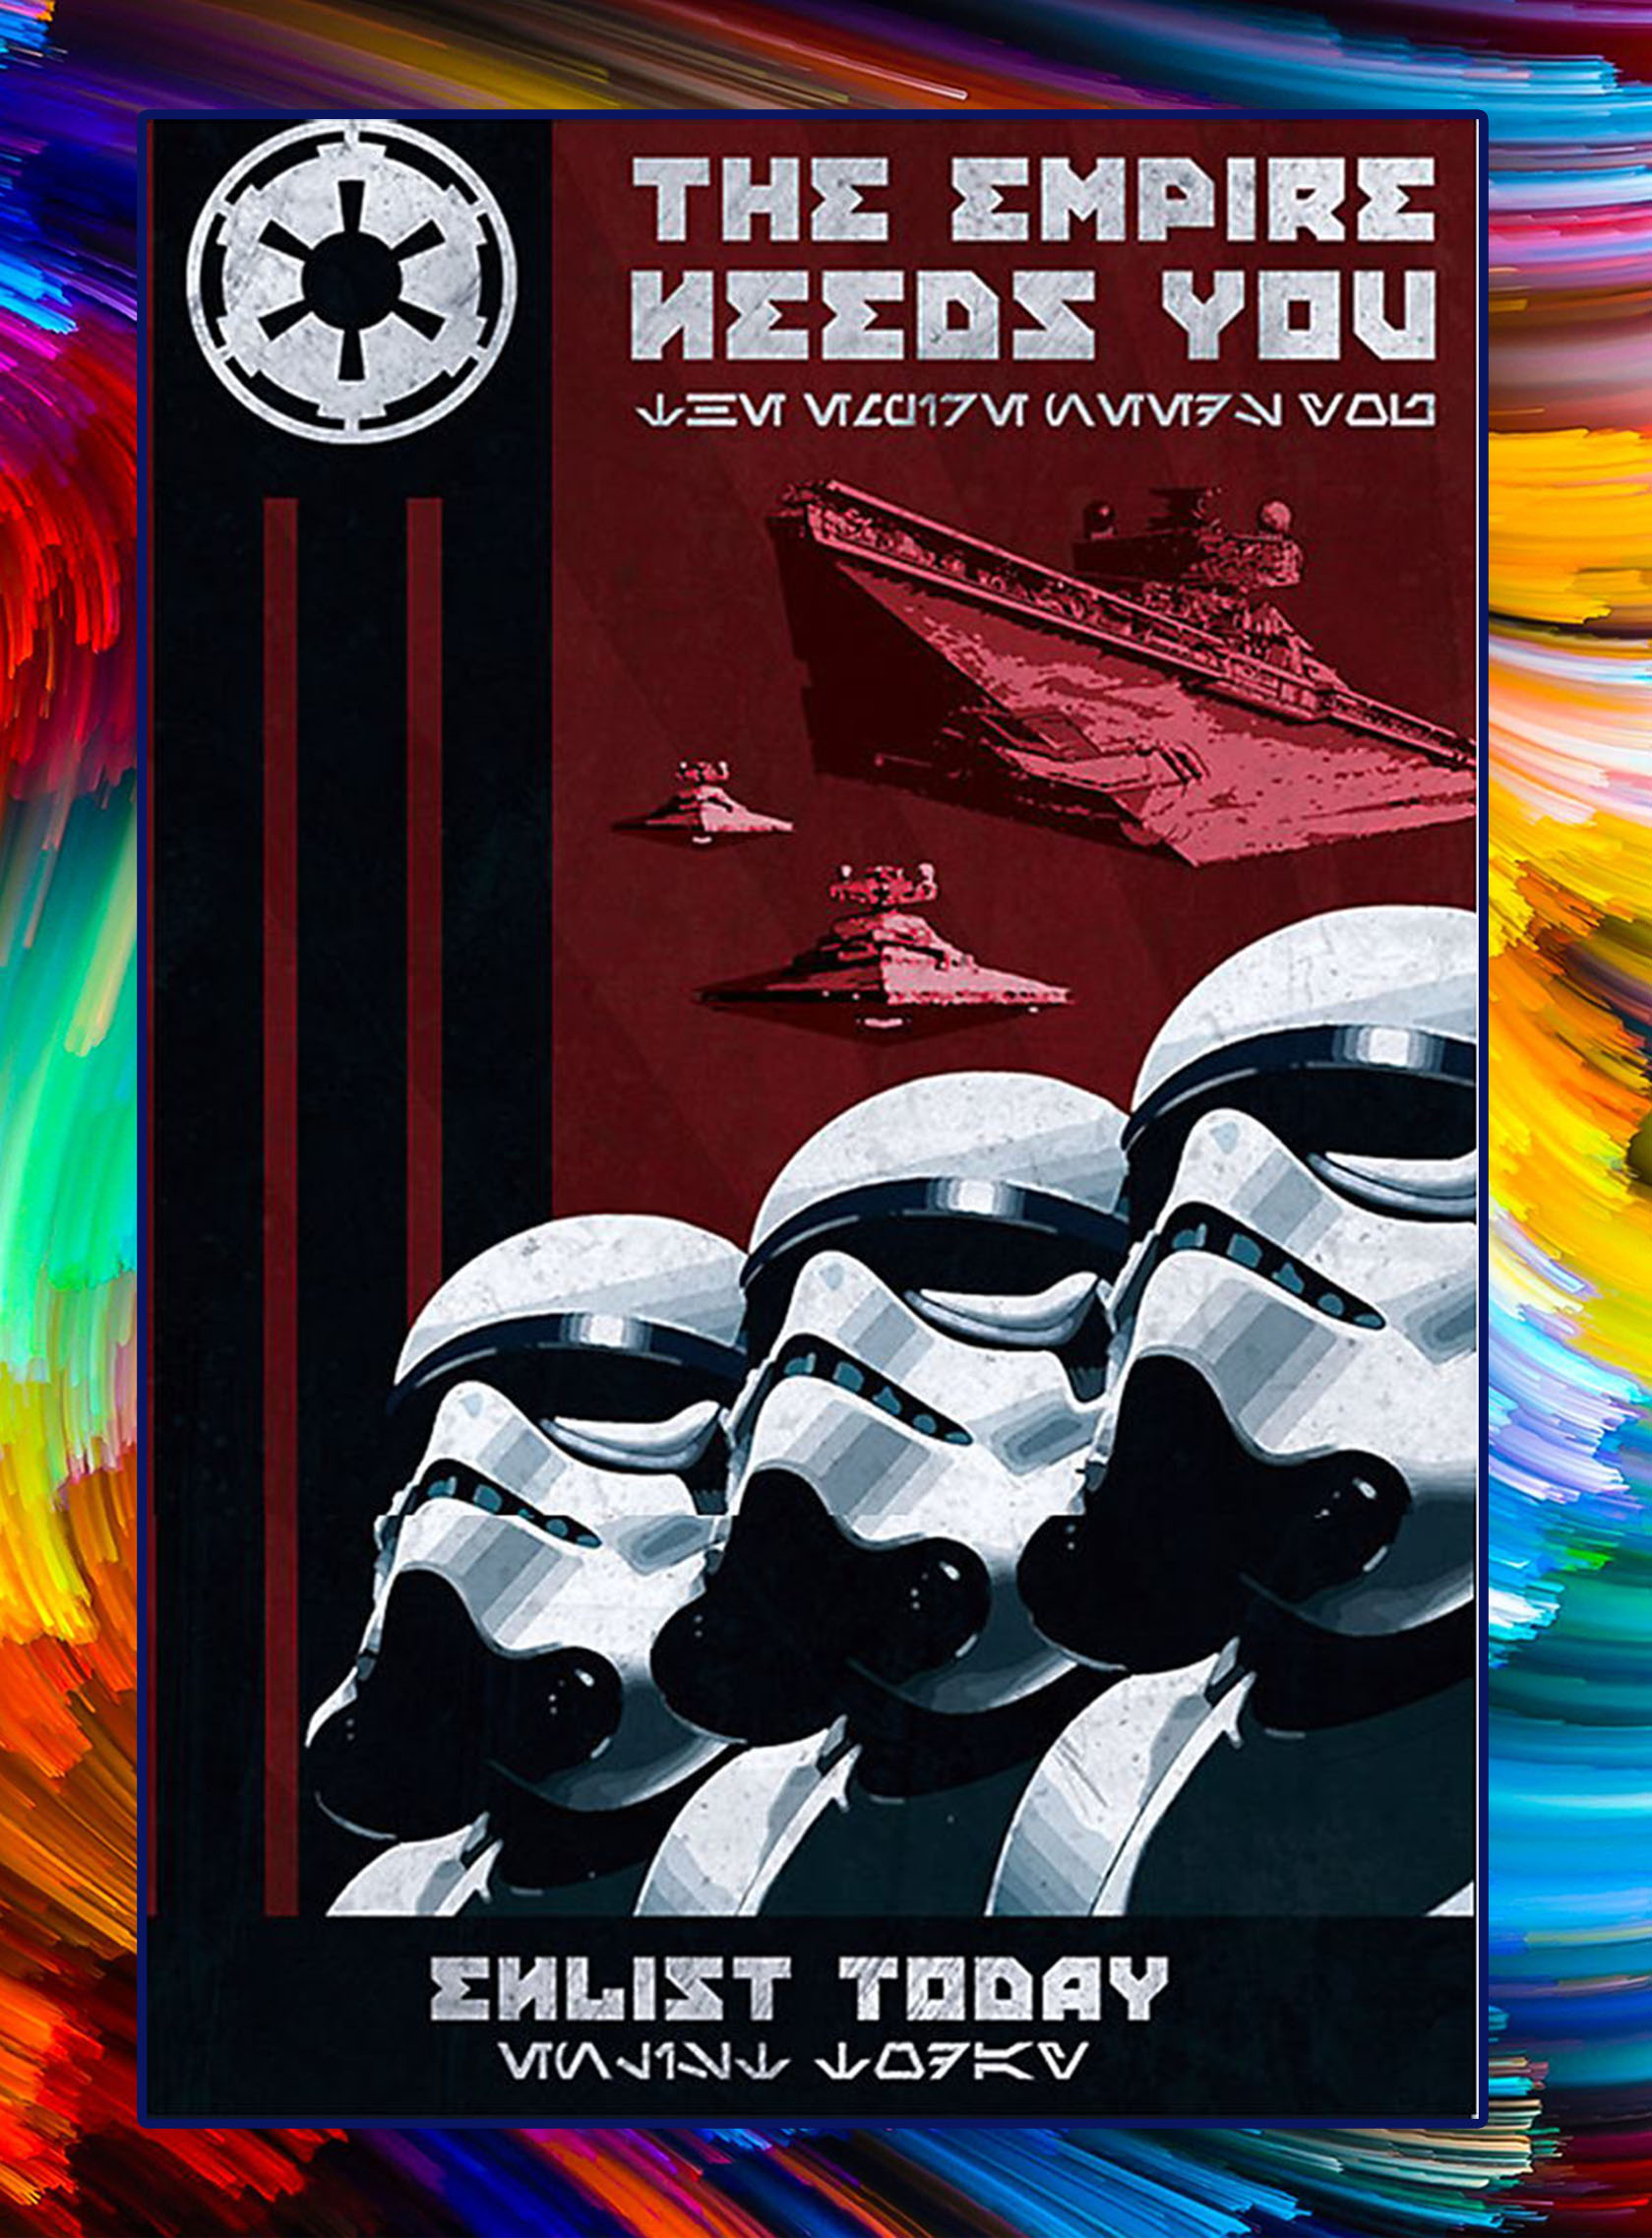 The empire needs you enlist today poster - A1